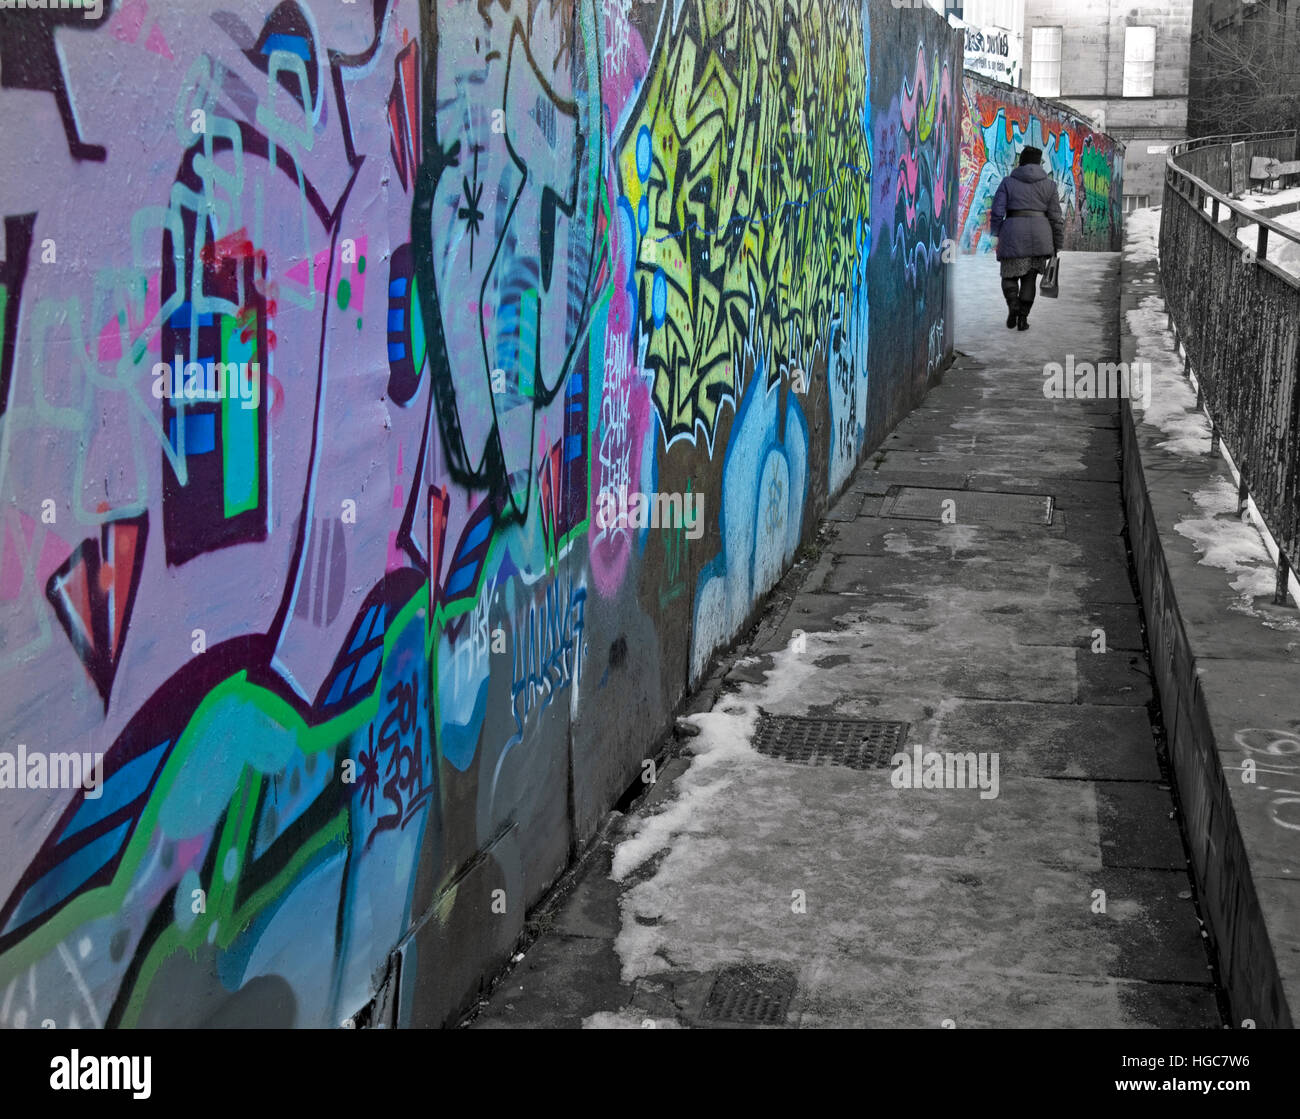 Old lady walking down a snowy path with graffiti, Edinburgh City,Scotland - Stock Image